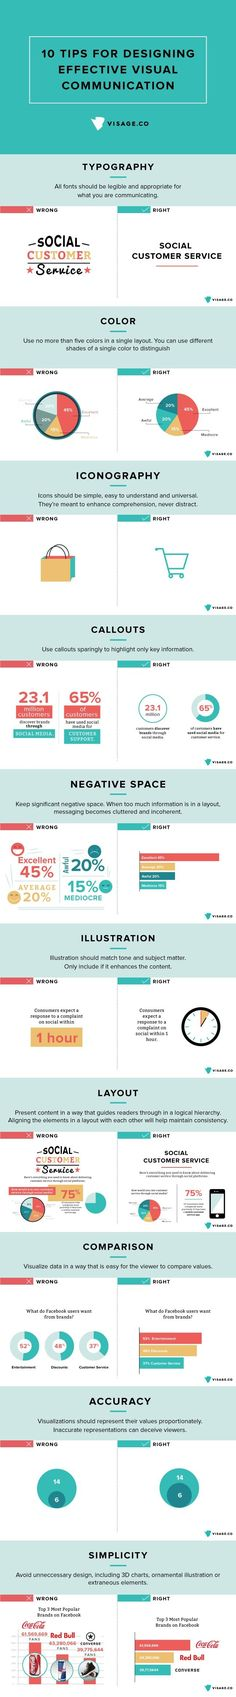 10 Tips for designing visual communication